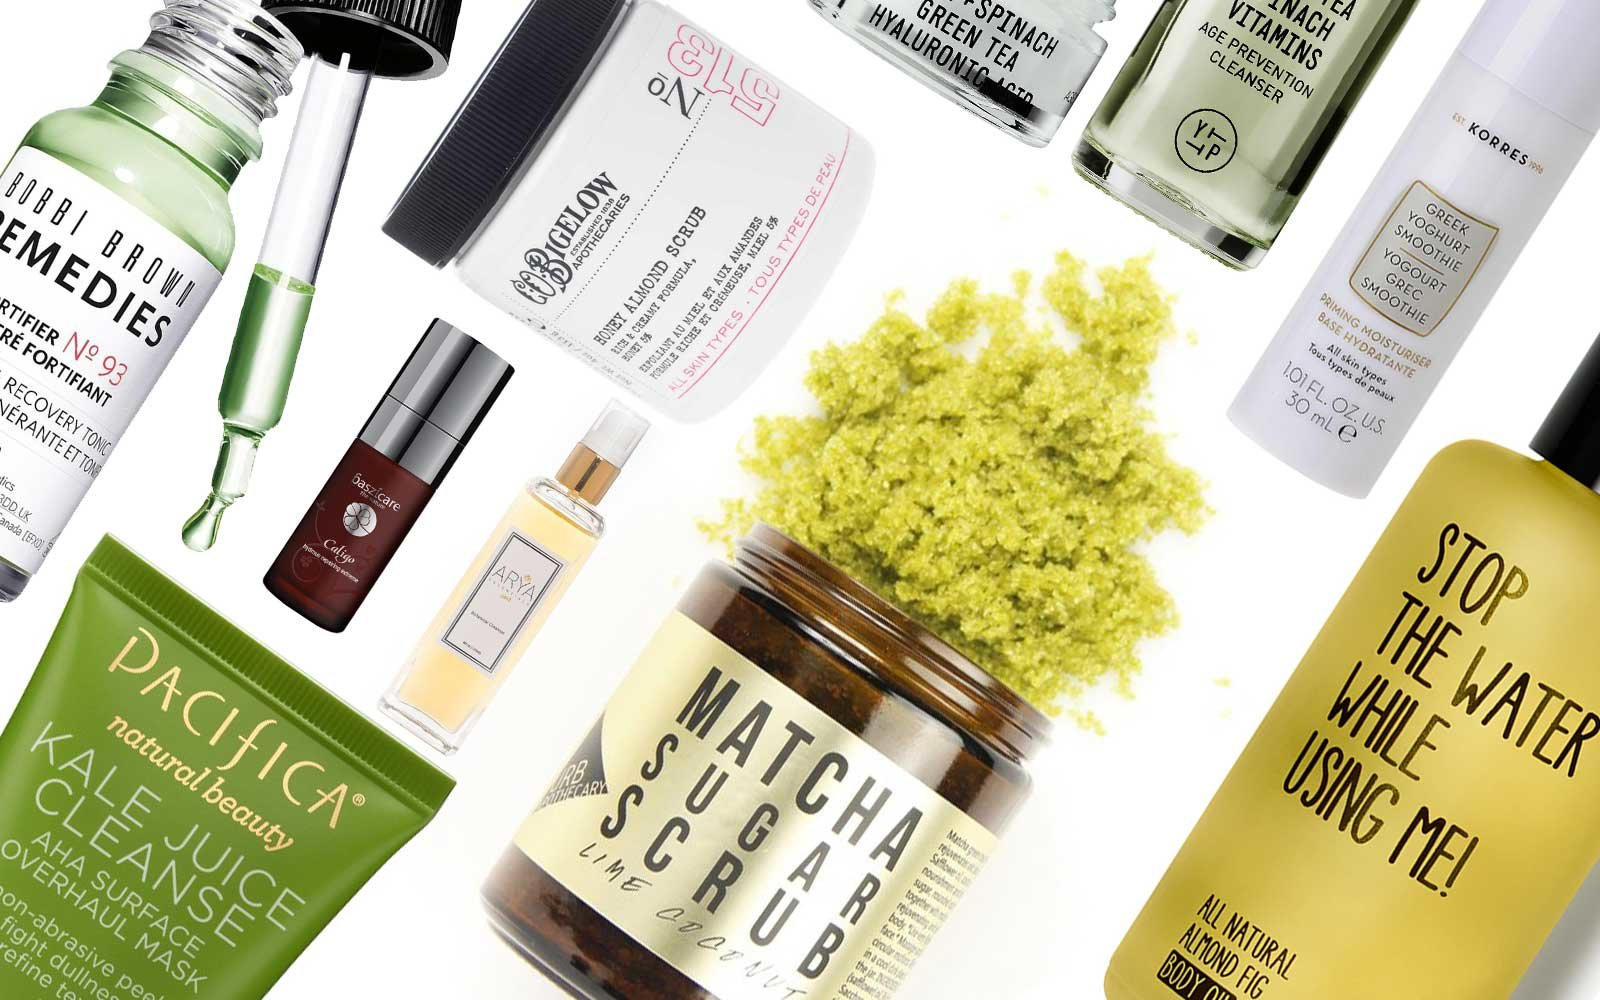 superfood-beauty-collage-ESSUPERBEAUTY0117.jpg